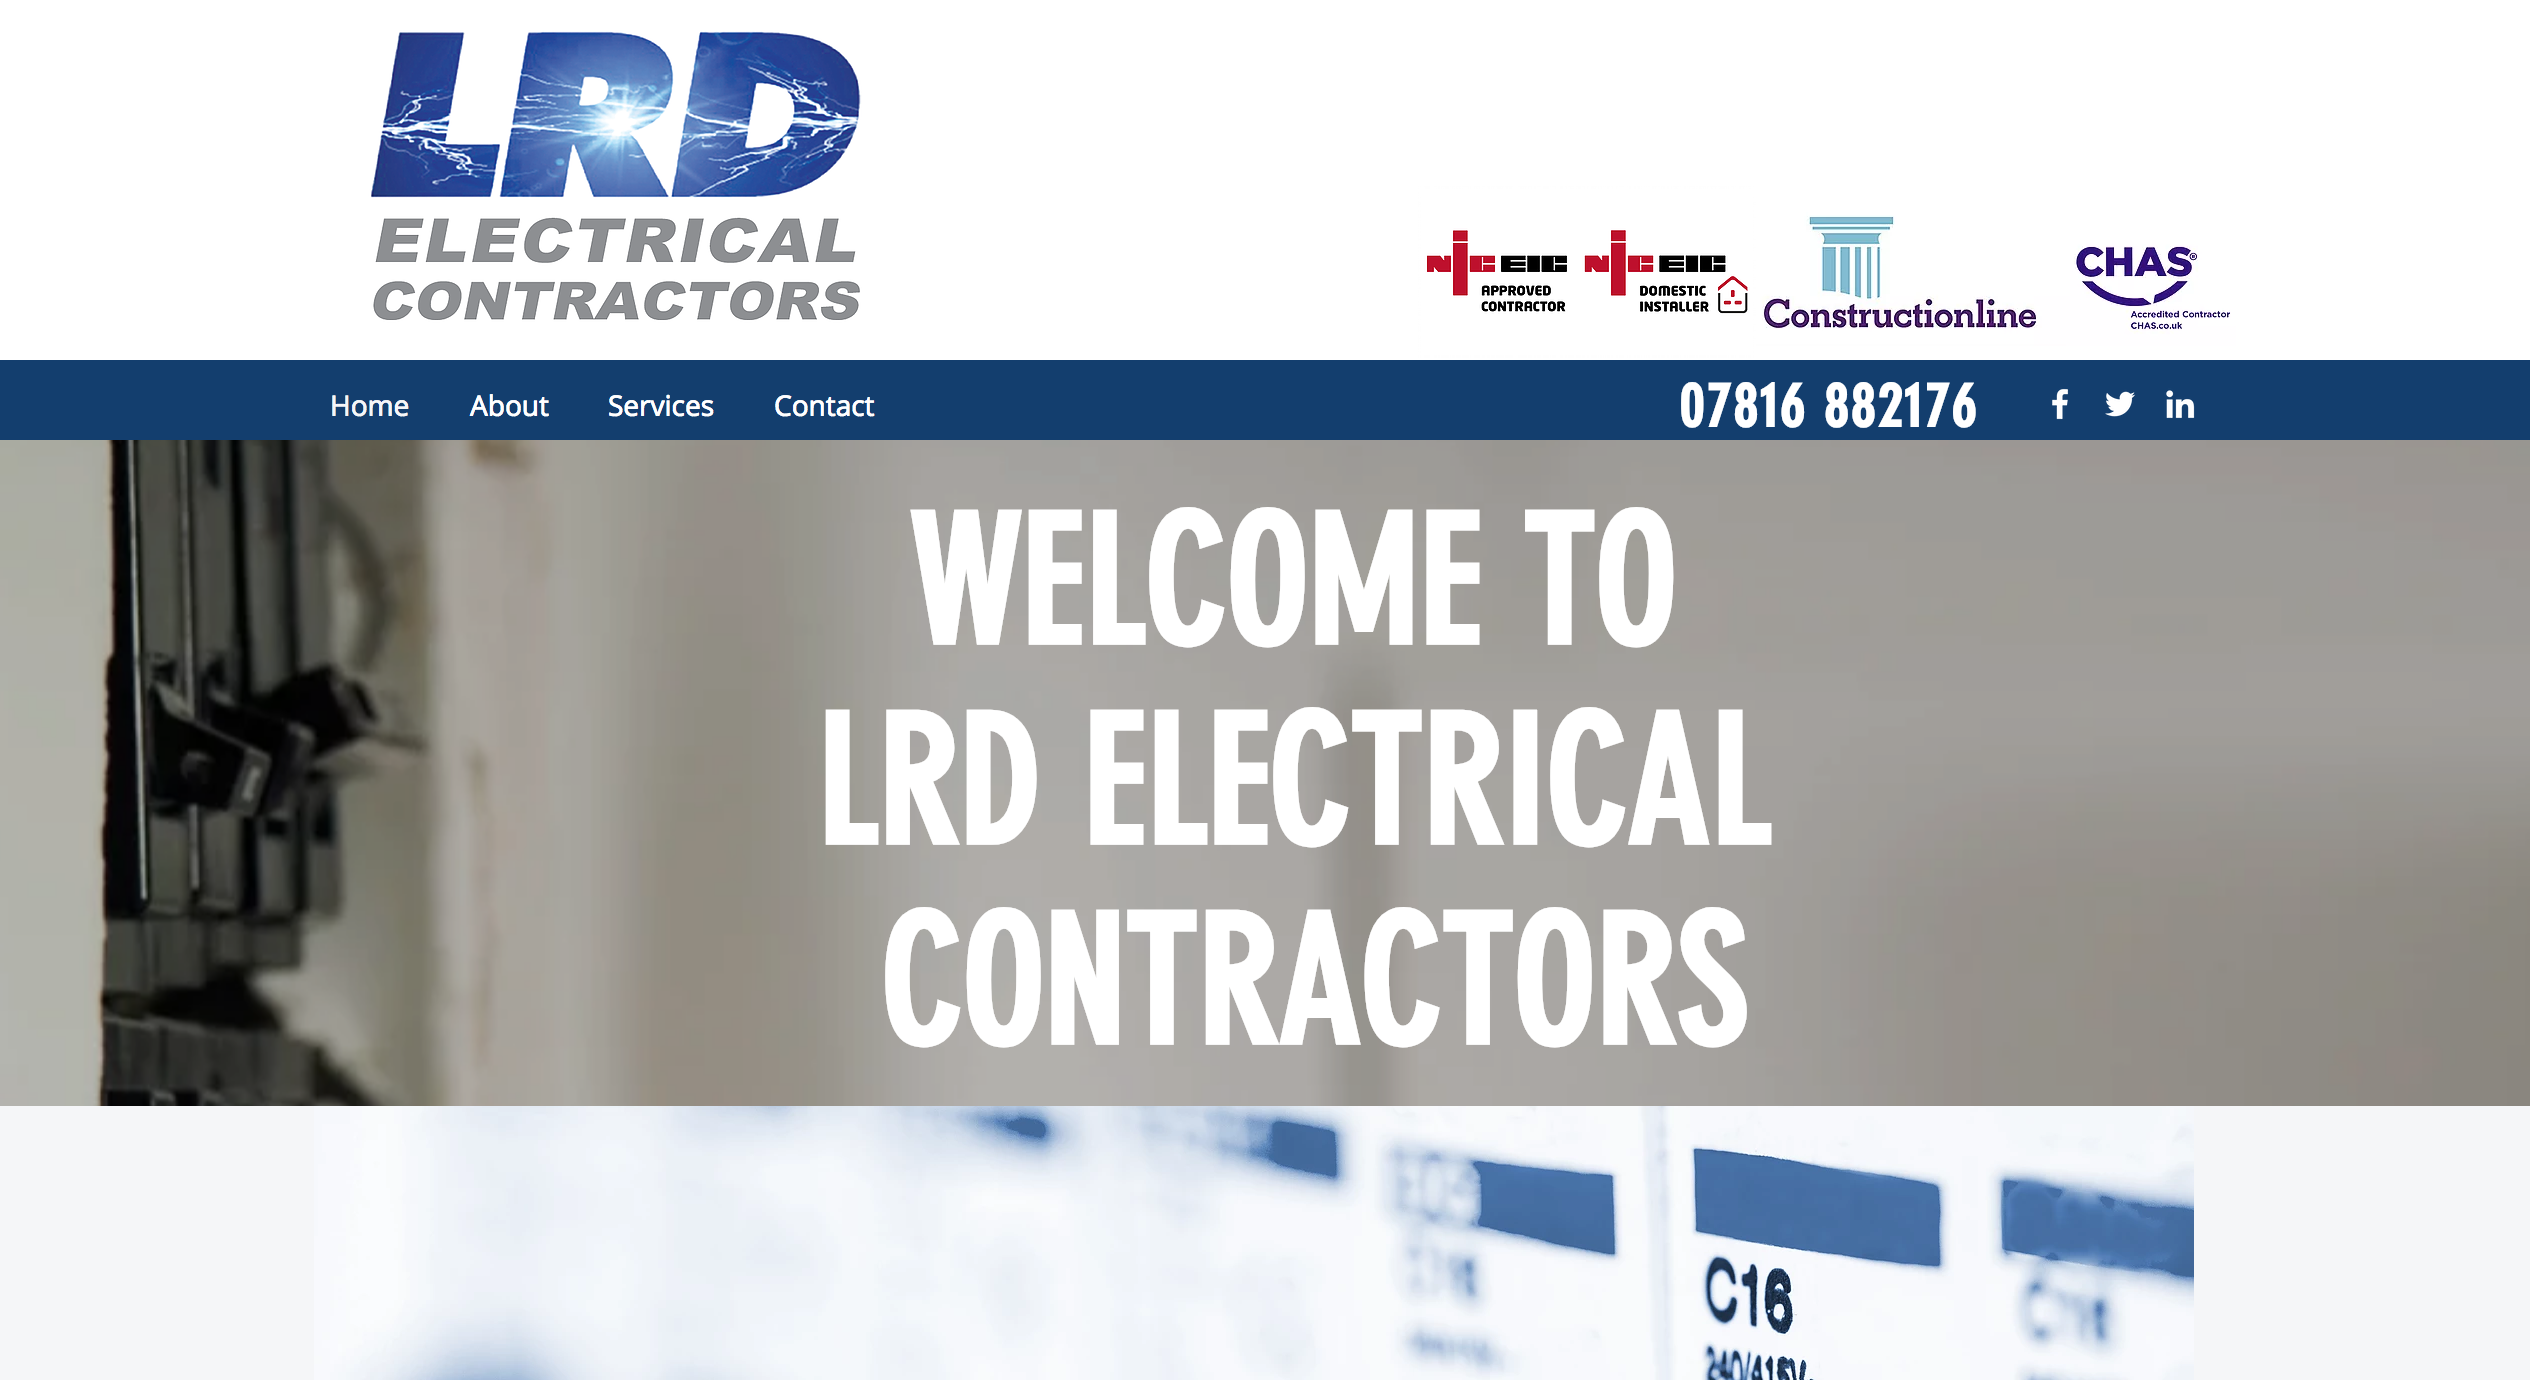 LRD Electrical